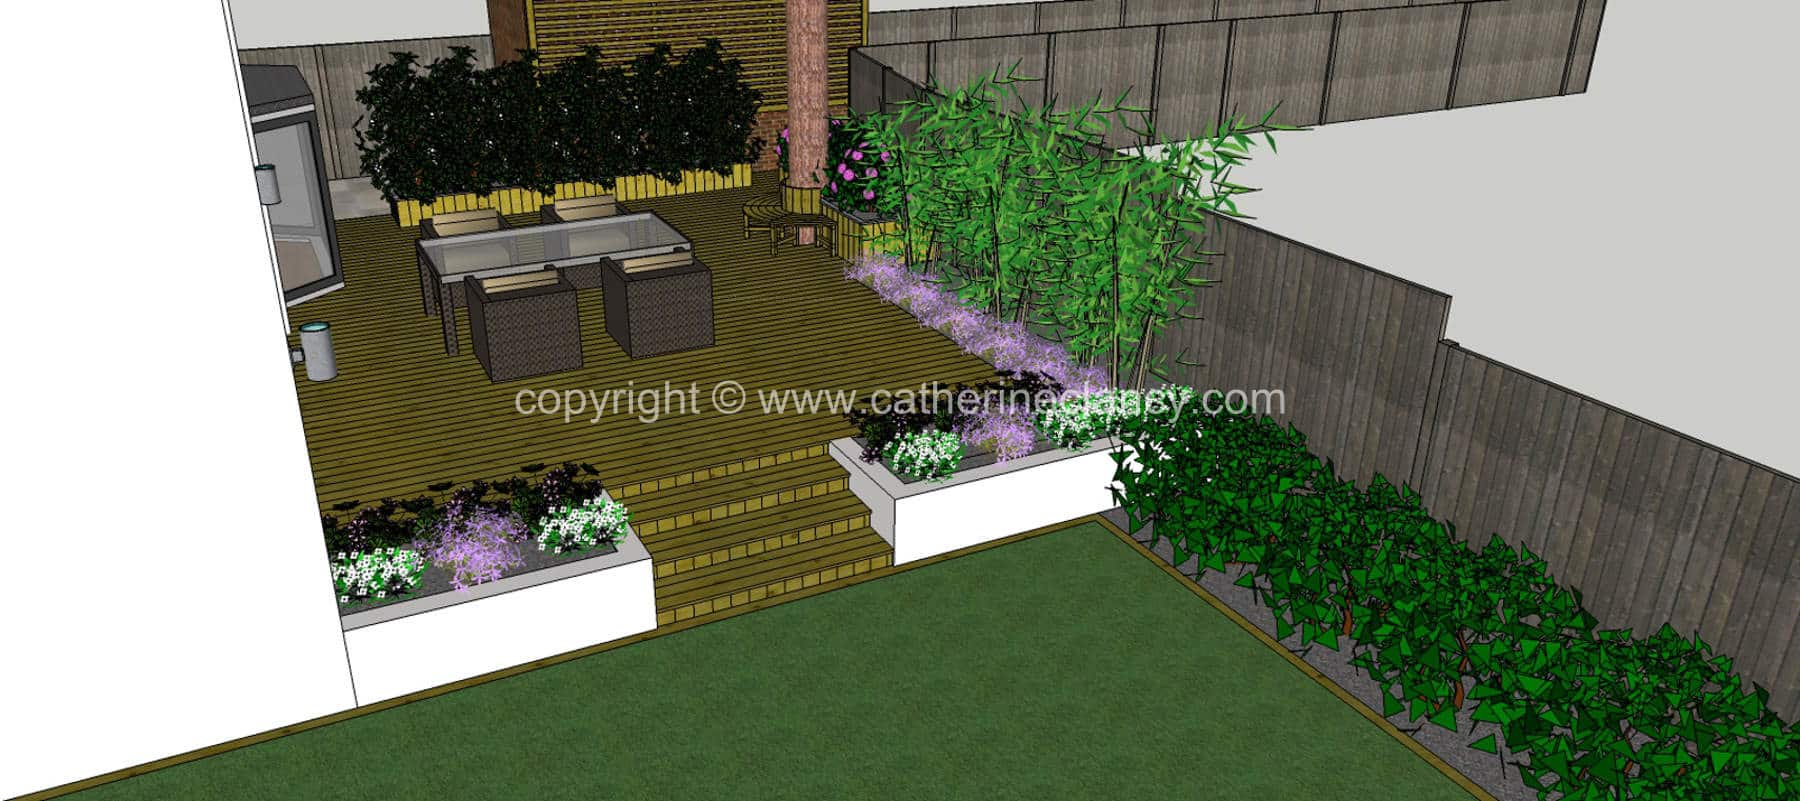 blackheath-deck-garden-7